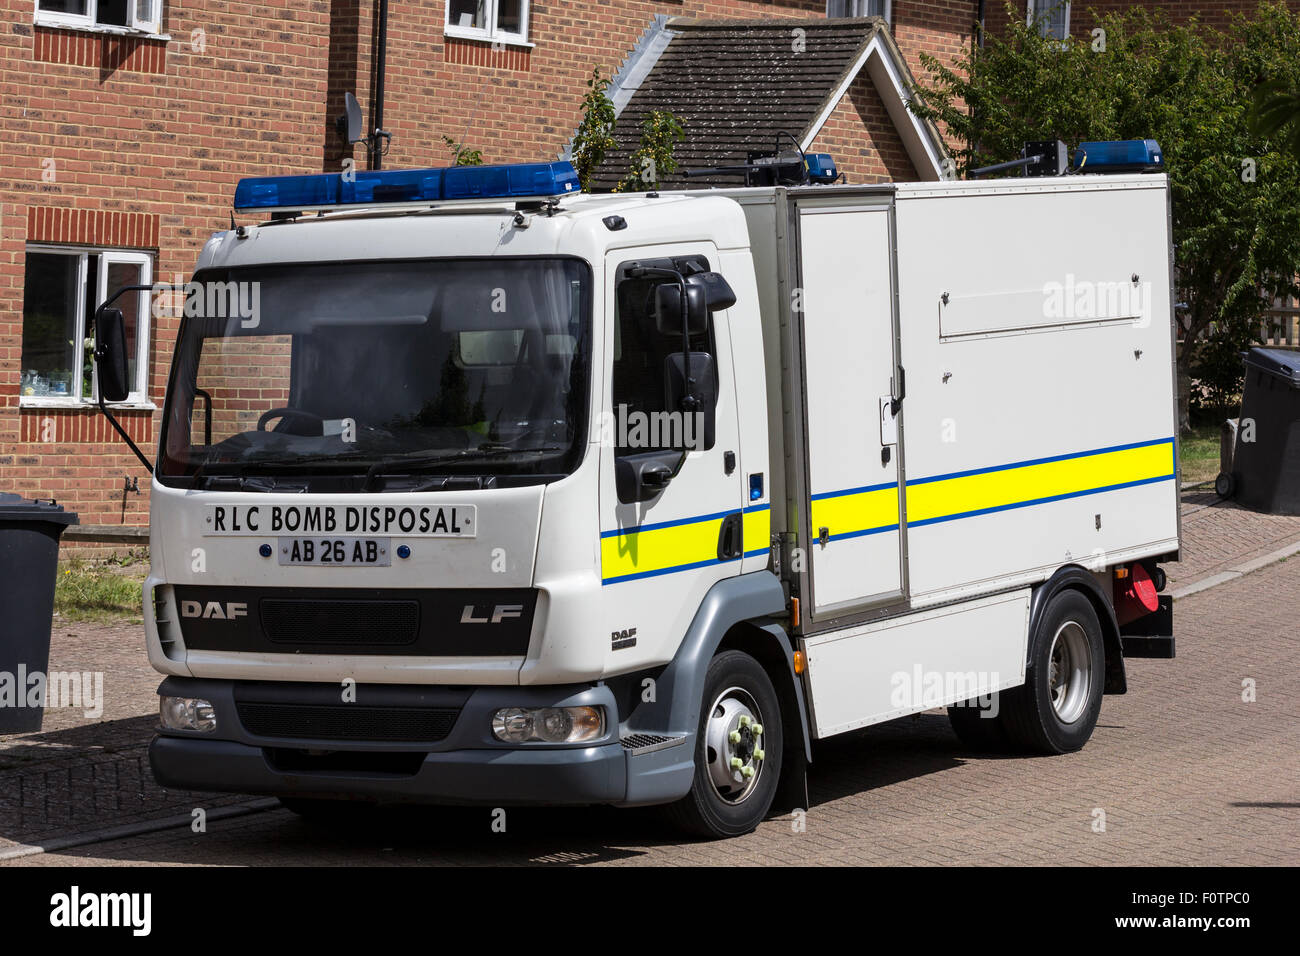 Royal Logistics Corps Bomb Disposal seen here at a house raid in Uckfield. - Stock Image